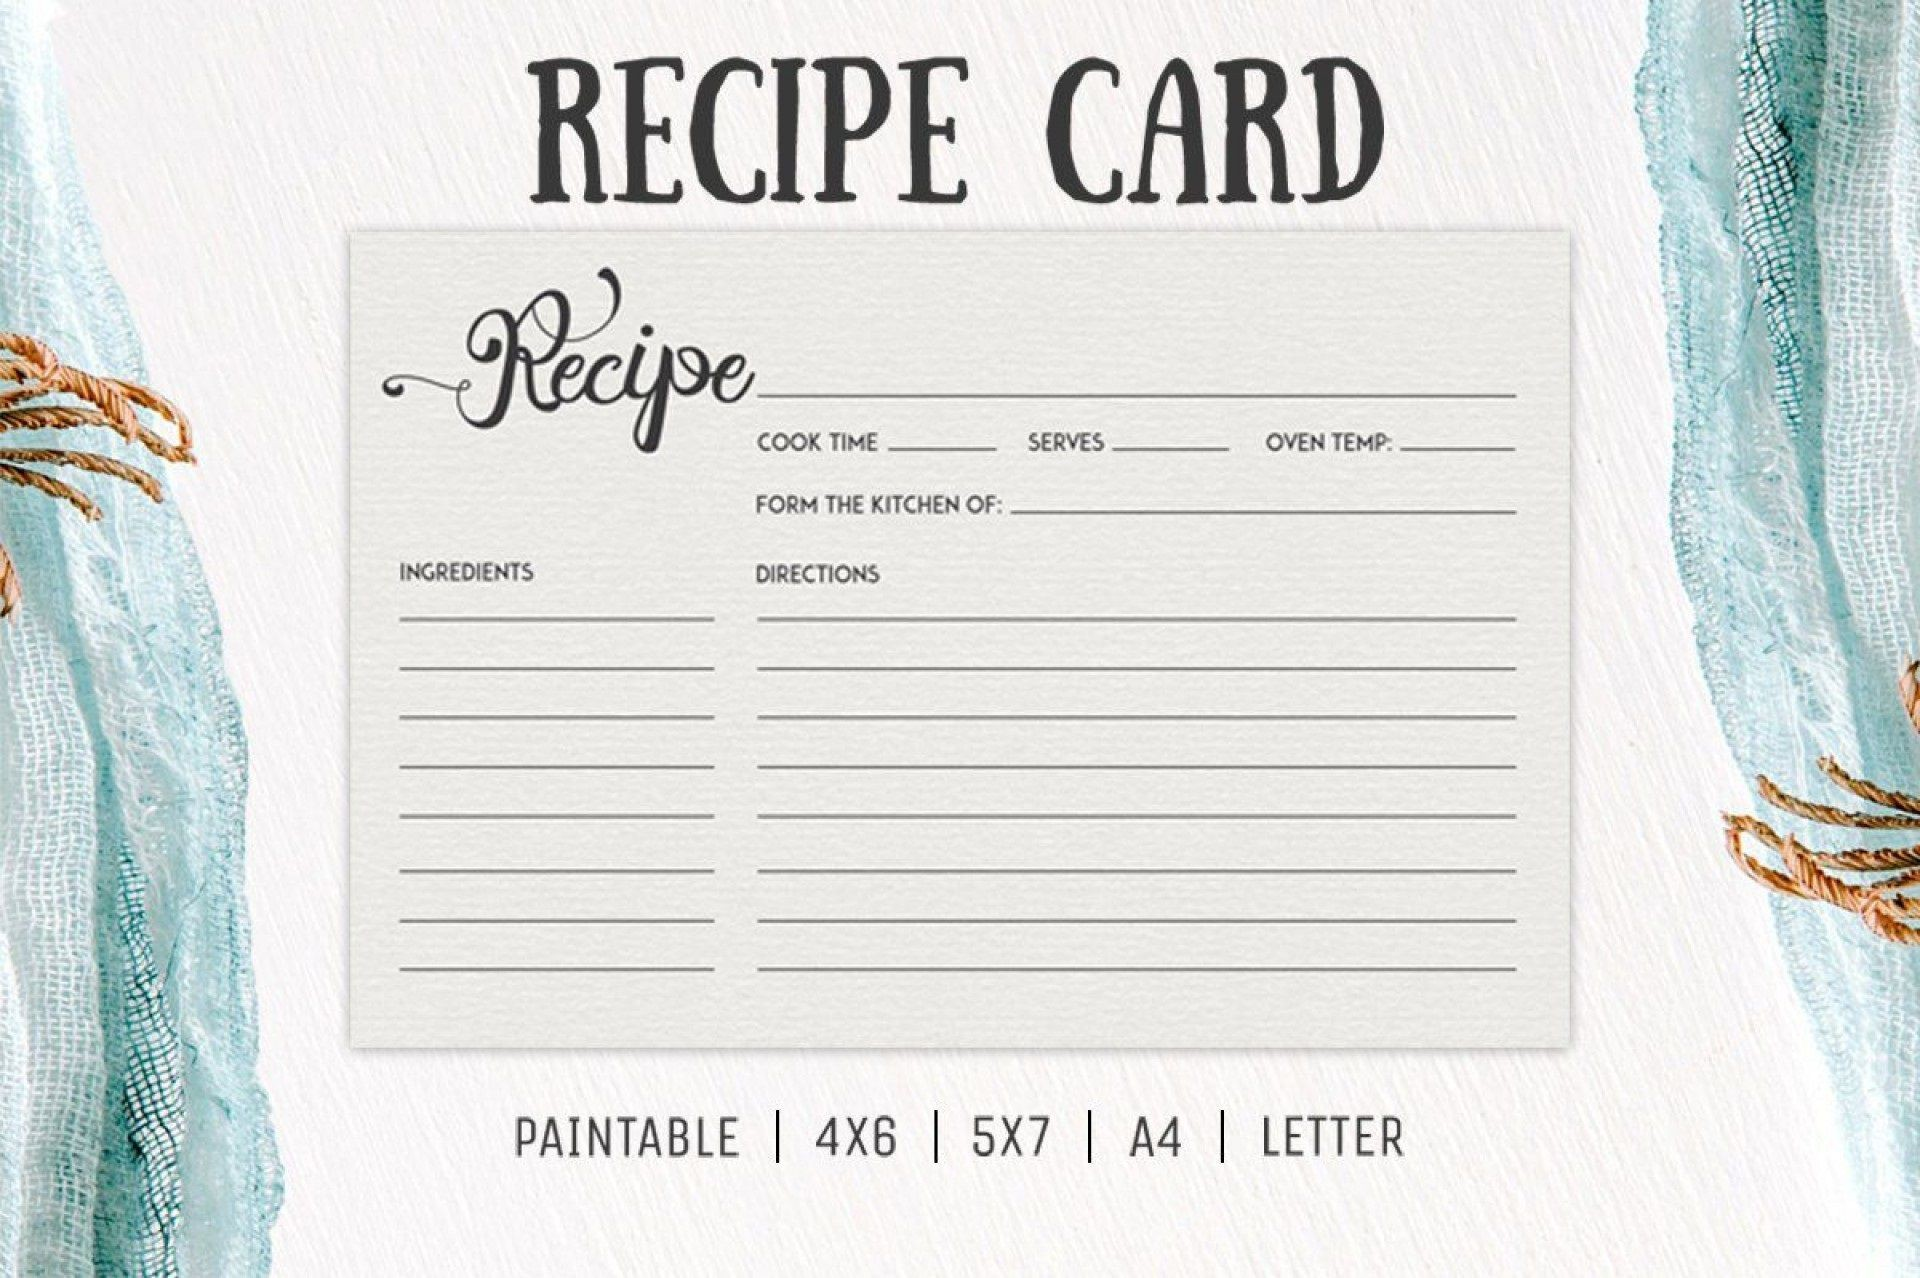 006 Incredible Free 4x6 Recipe Card Template For Microsoft Word High Def  Editable1920